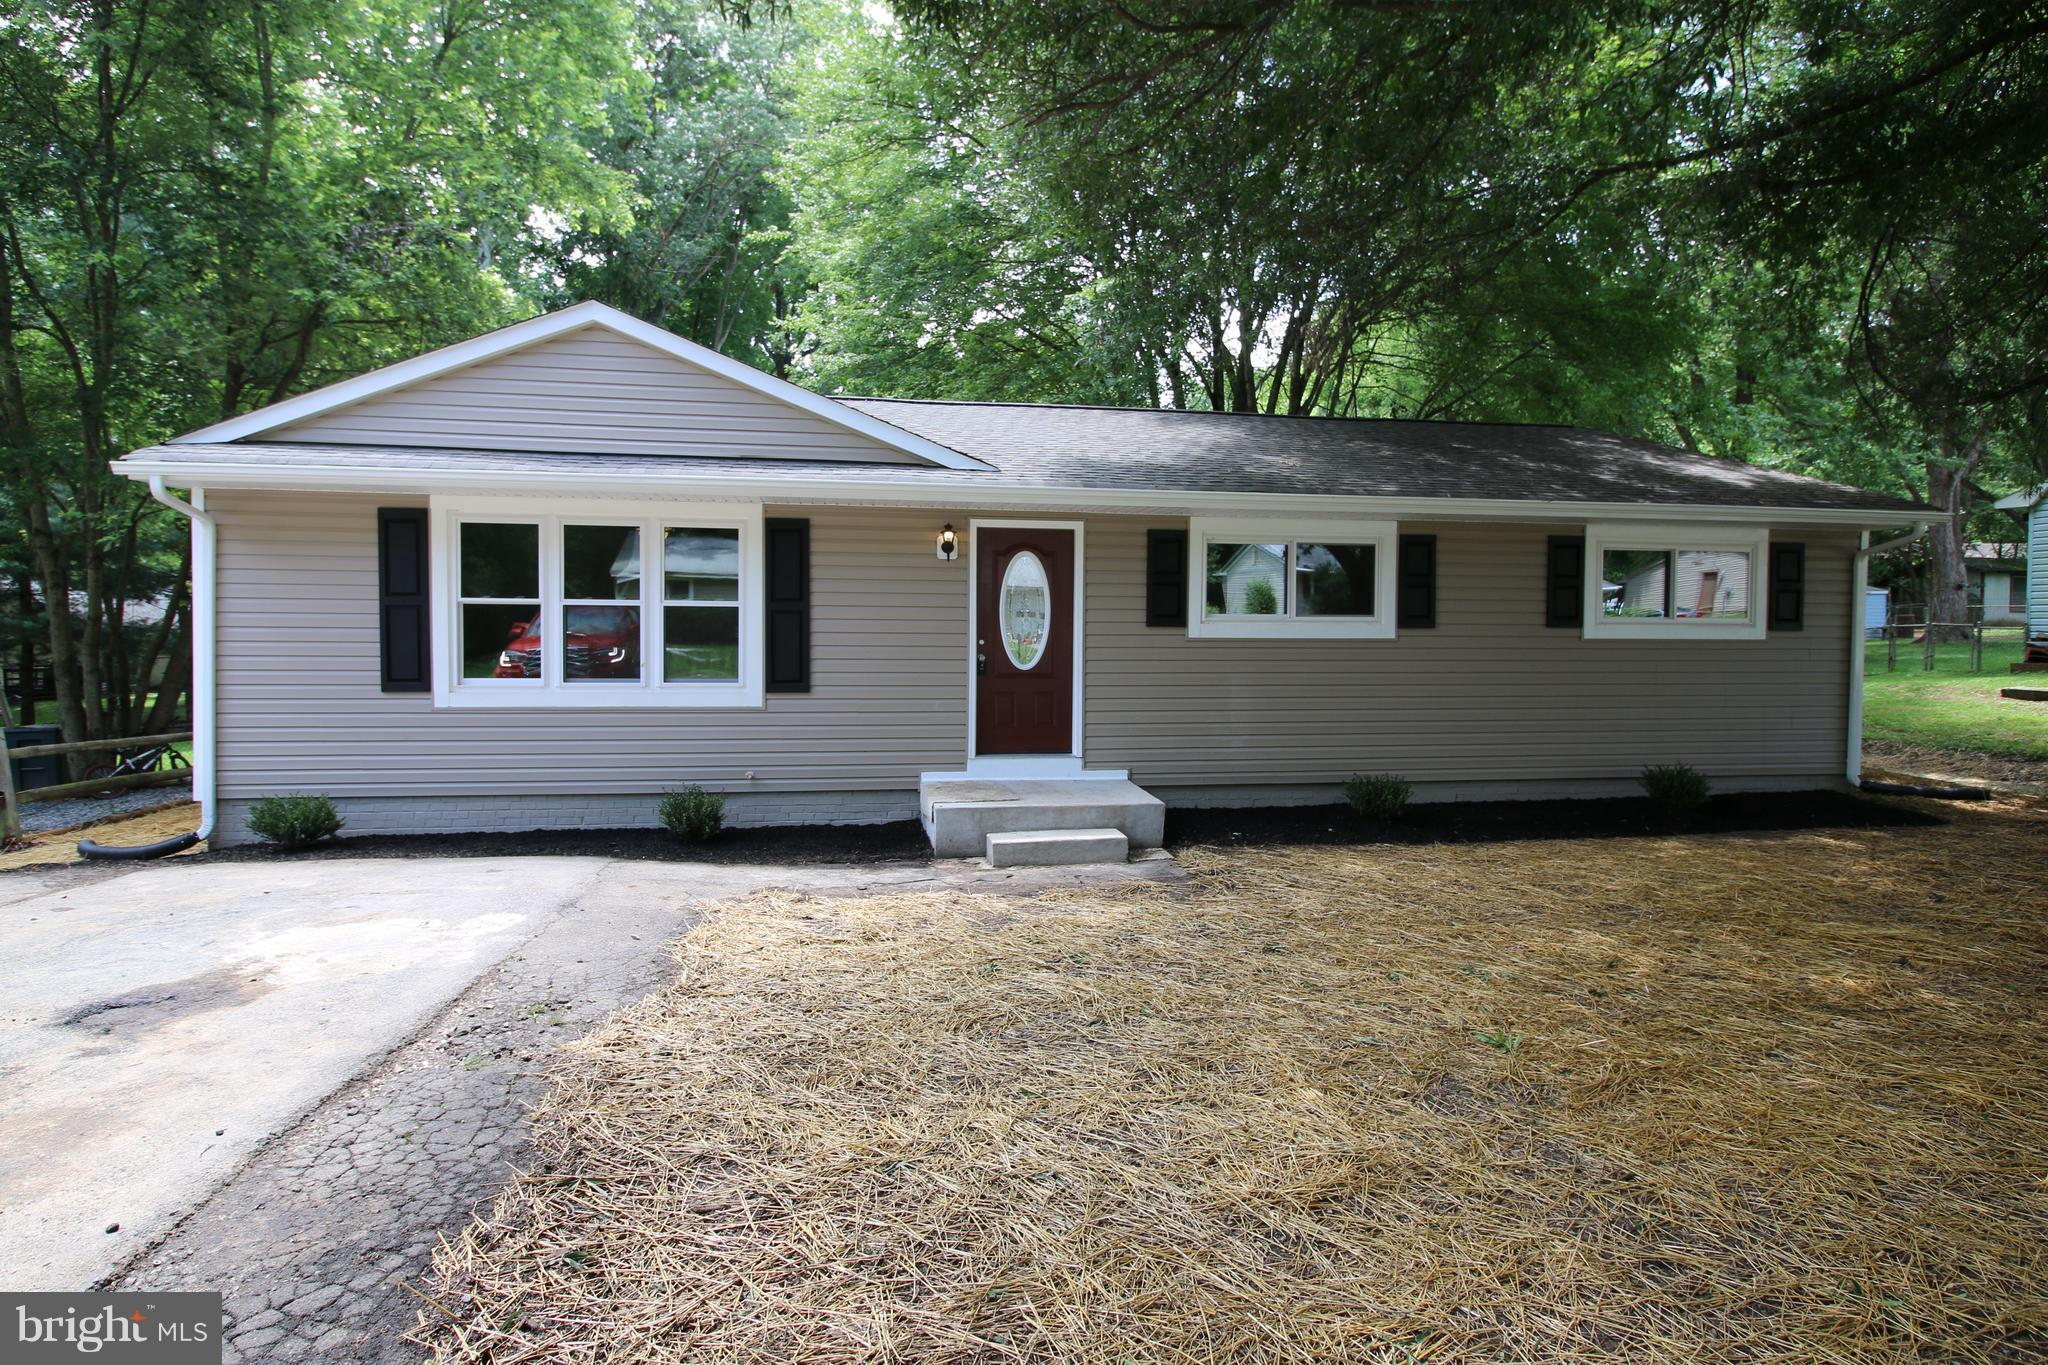 Fully renovated home! New roof, new siding, fresh paint, new flooring, cabinets, granite counters, stainless steel appliances, vanities, windows, and much more!  Own a remodeled home for less than rent!